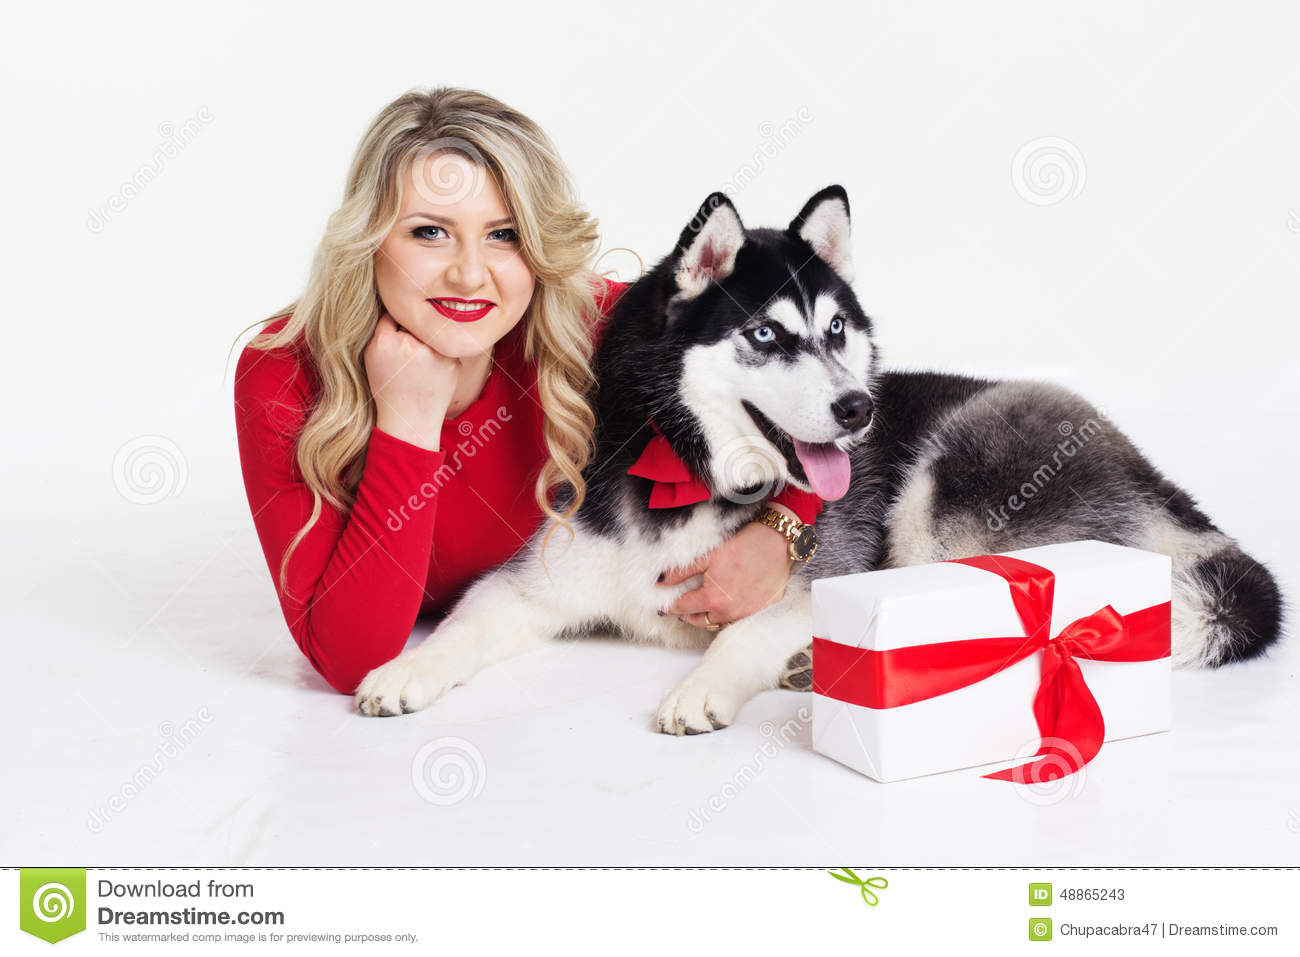 Nice Dog Gifts For Her Part - 6: Royalty-Free Stock Photo